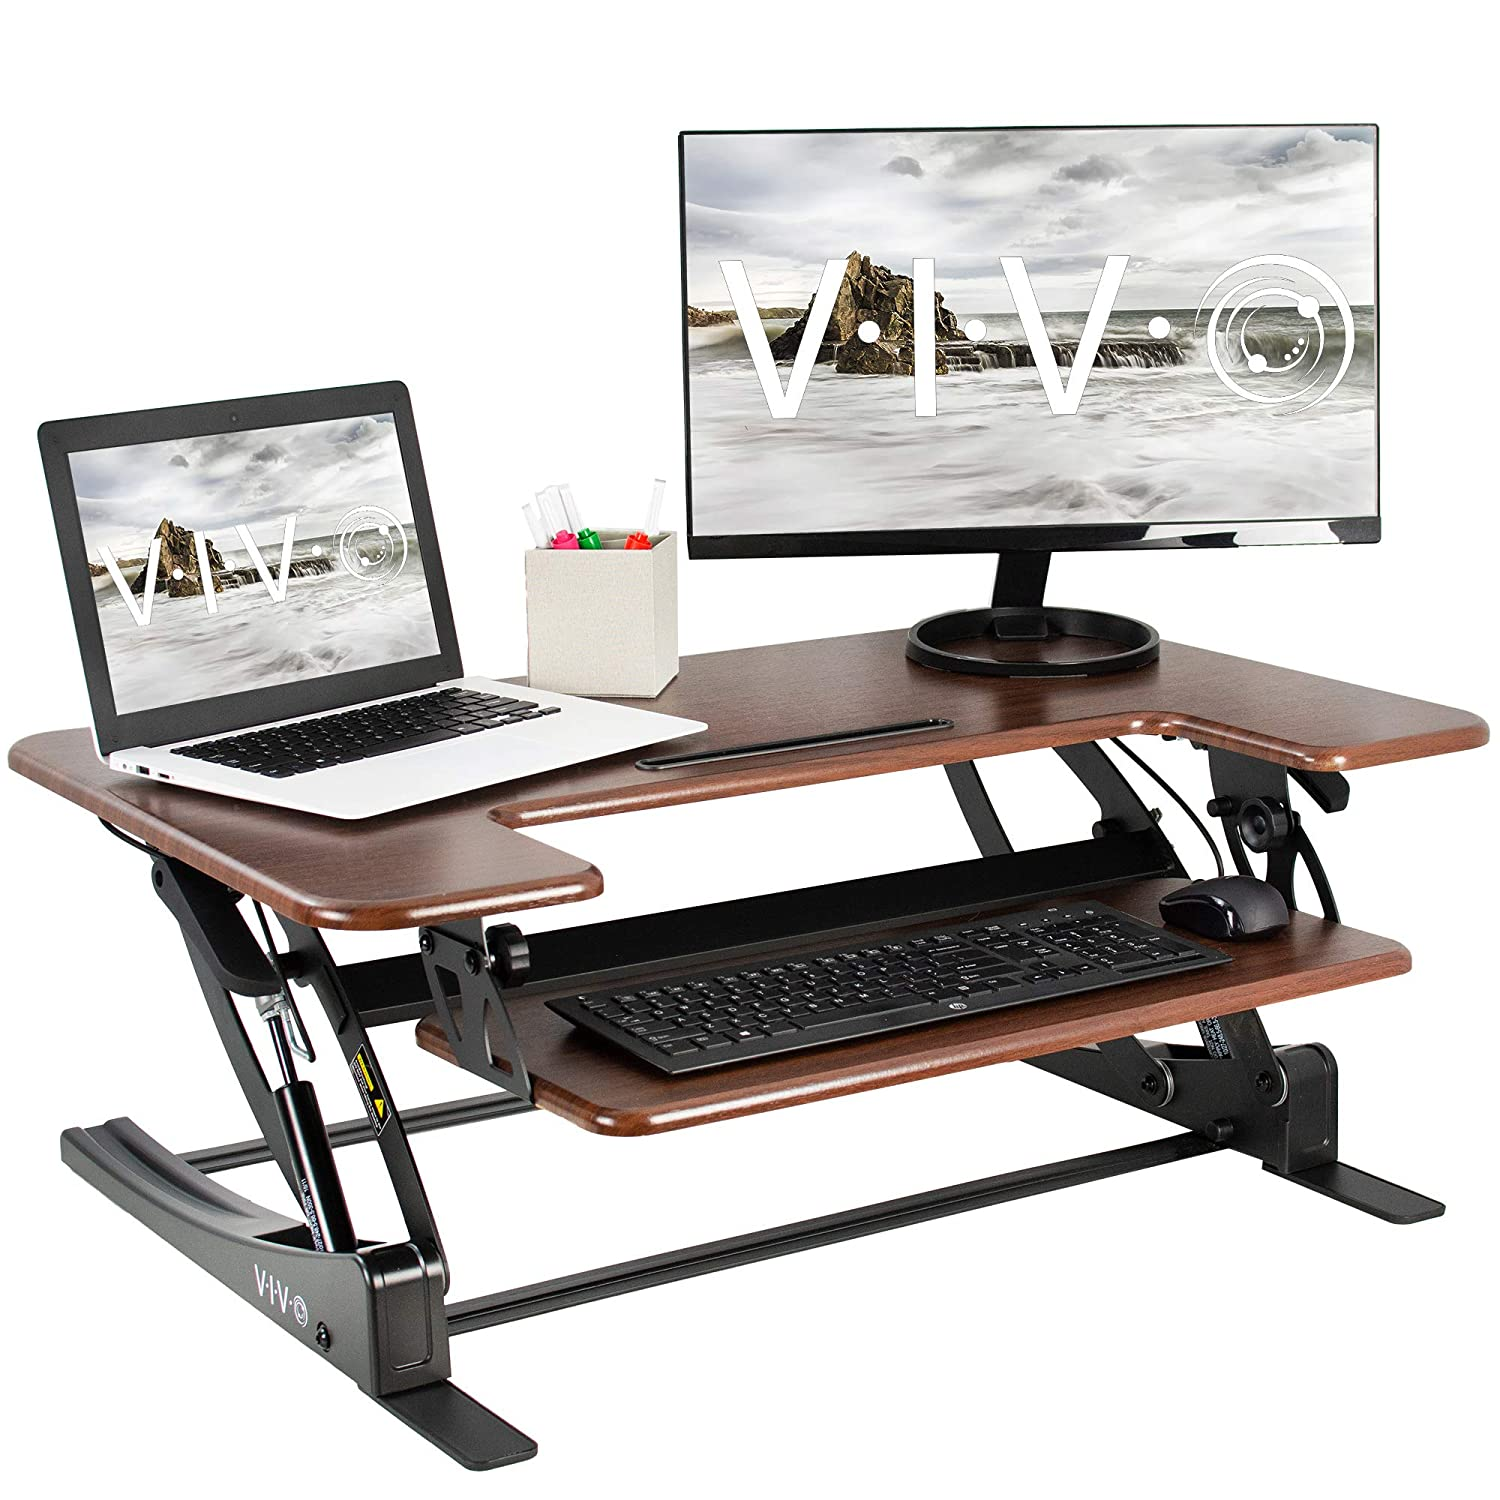 VIVO Dark Wood Height Adjustable 36 inch Stand Up Desk Converter | Quick Sit to Stand Tabletop Dual Monitor Riser Workstation (DESK-V000VD)